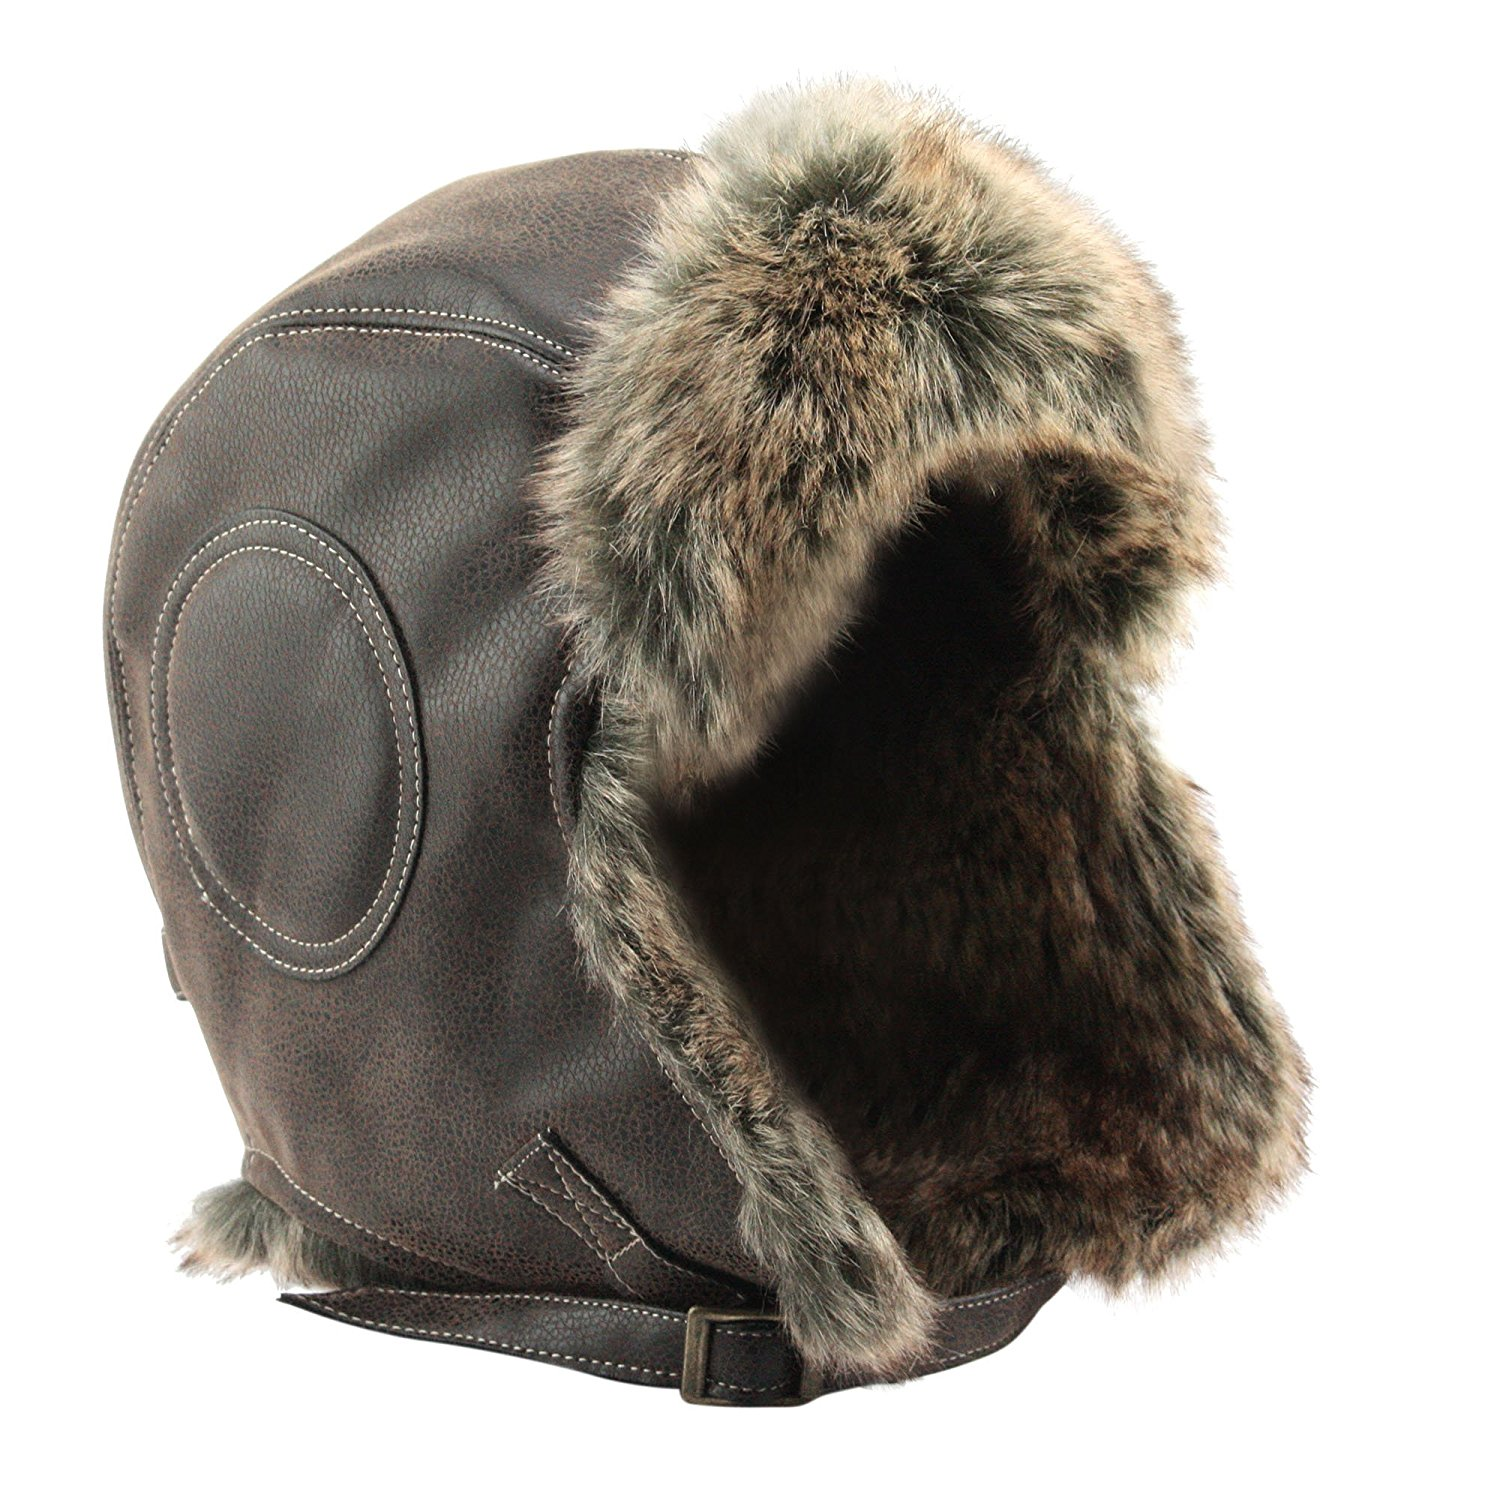 9736b04b74af1 Get Quotations · Global Vasion Winter Hat Fur Leather Trapper Pilot Bomber  Hat with Ear Flap Chin Strap for